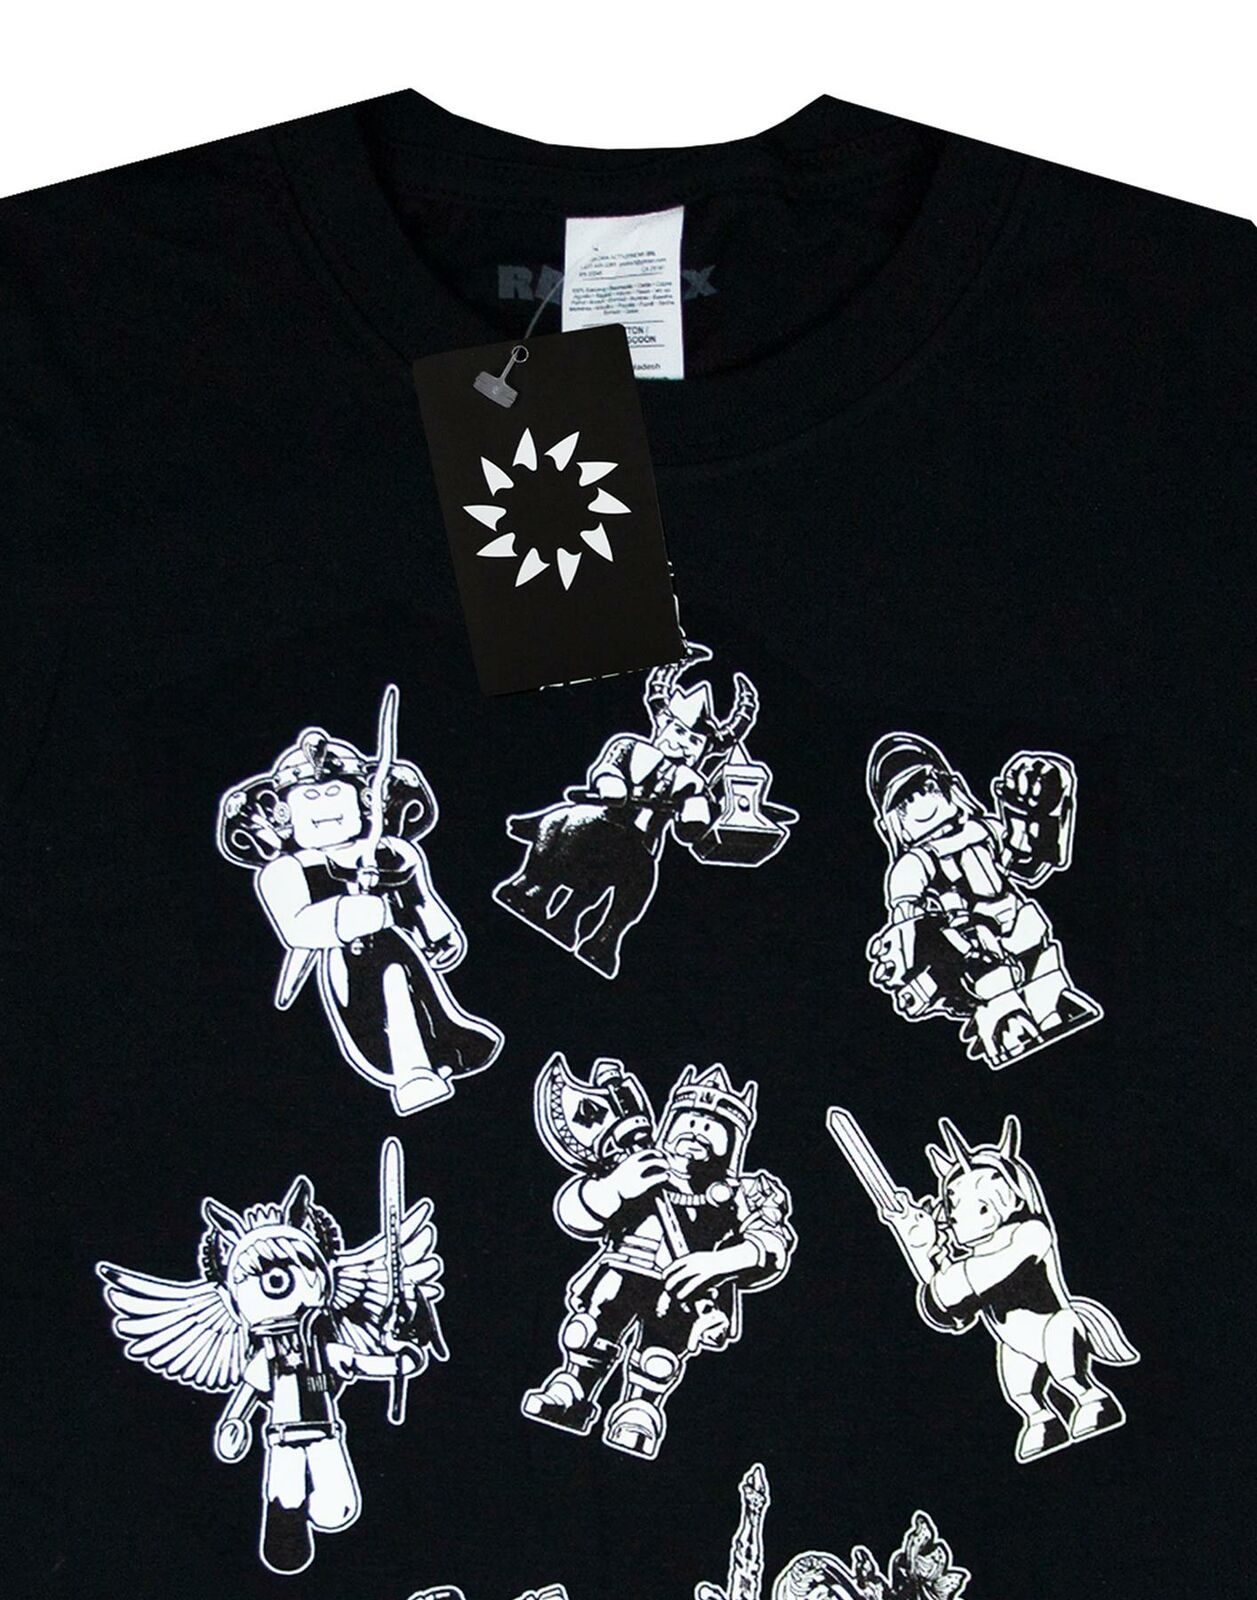 Roblox-Characters-In-Space-Kid-039-s-Black-T-Shirt-Short-Sleeve-Gamer-039-s-Tee thumbnail 10